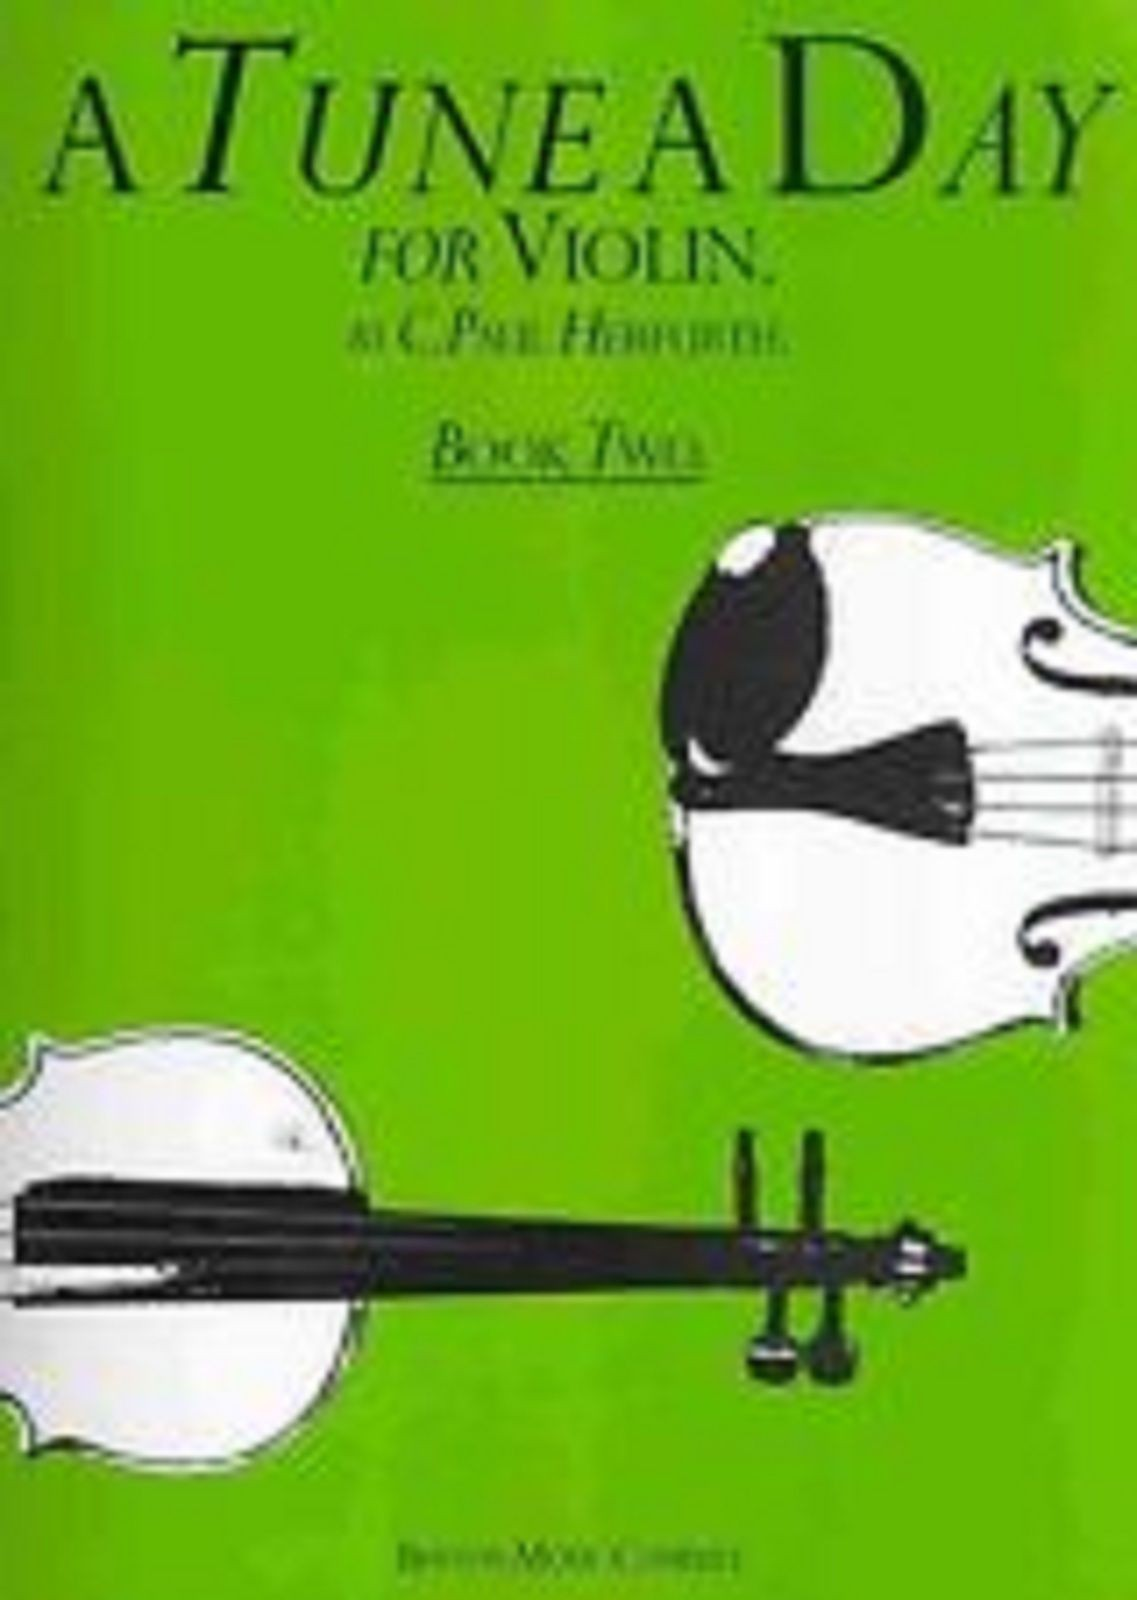 A Tune A Day Violin Book 2 Sheet Music Tutor Paul Herfurth Learn To Play S151